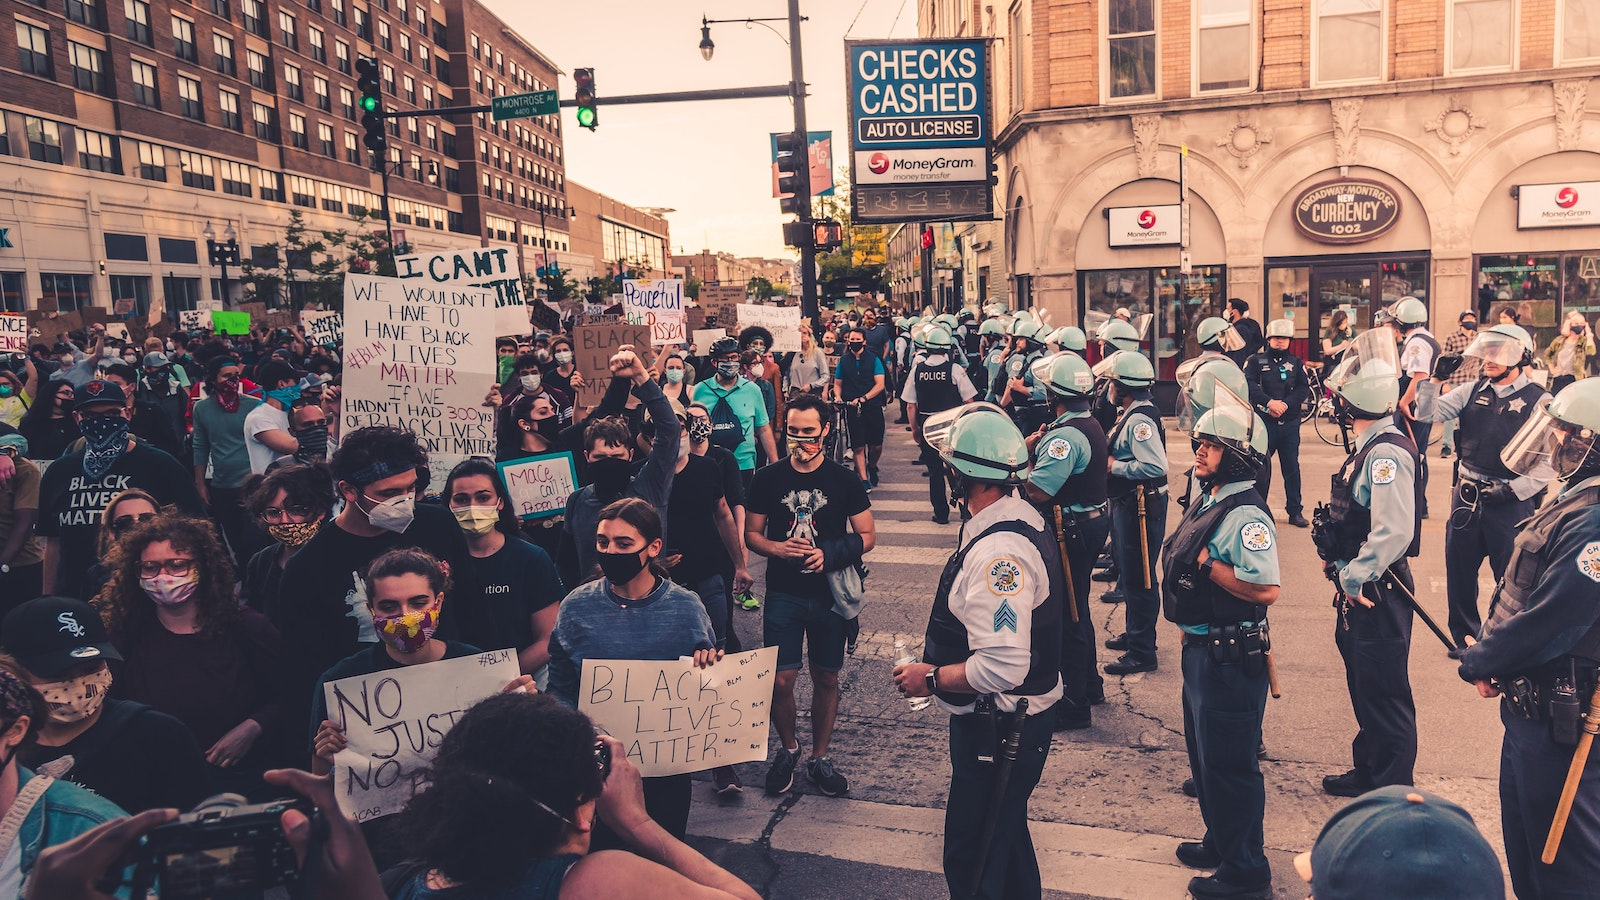 SFS On Topic: Institutions Respond to the Black Lives Matter Movement